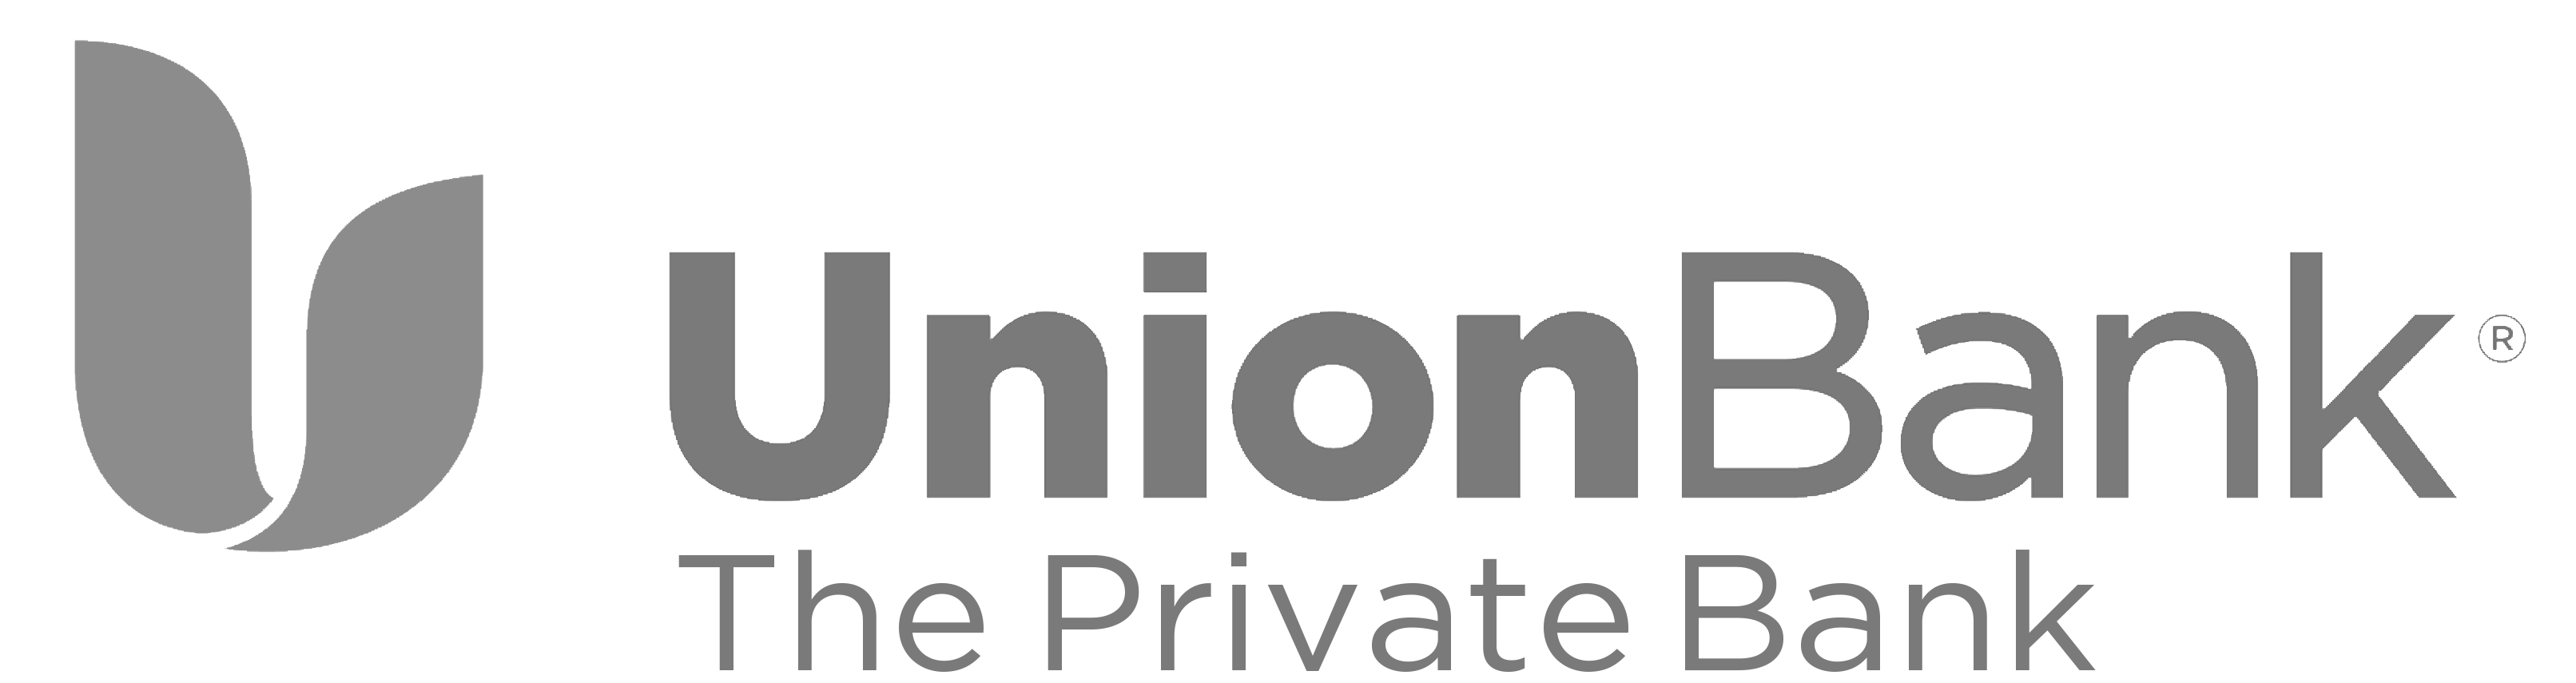 Union Bank - The Private Bank